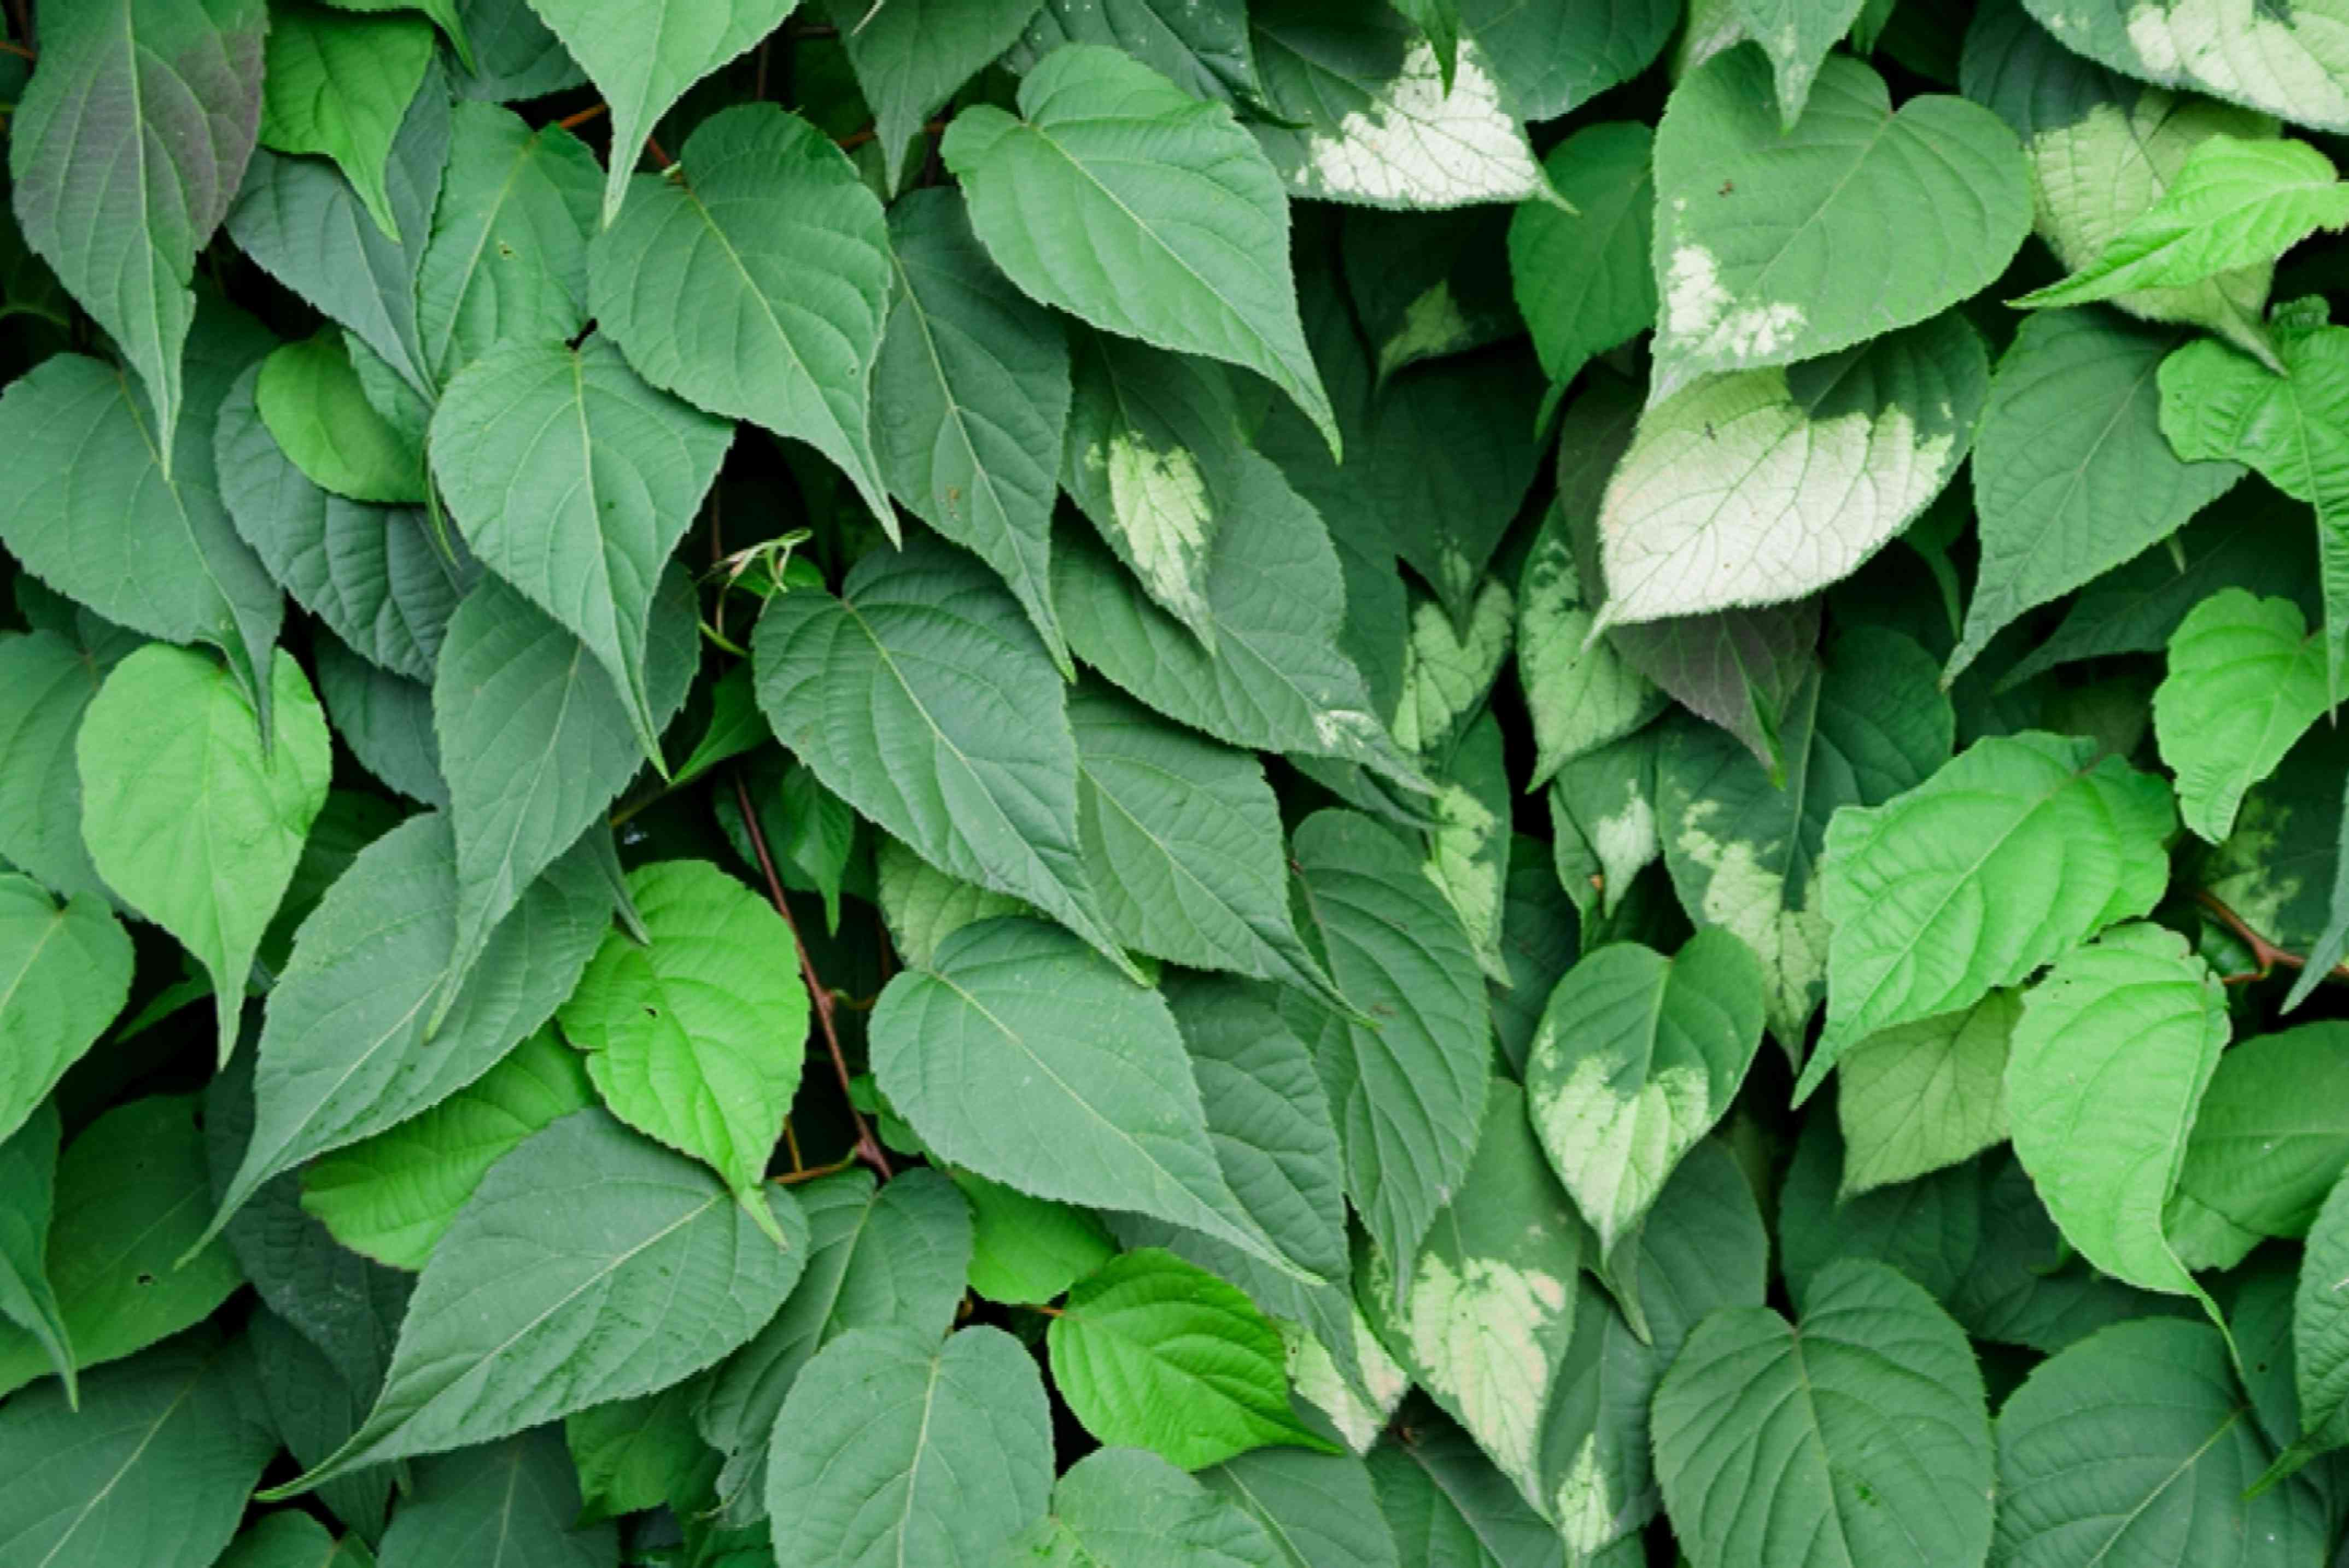 Lysimachia vulgaris green leaves clustered with some having white tips